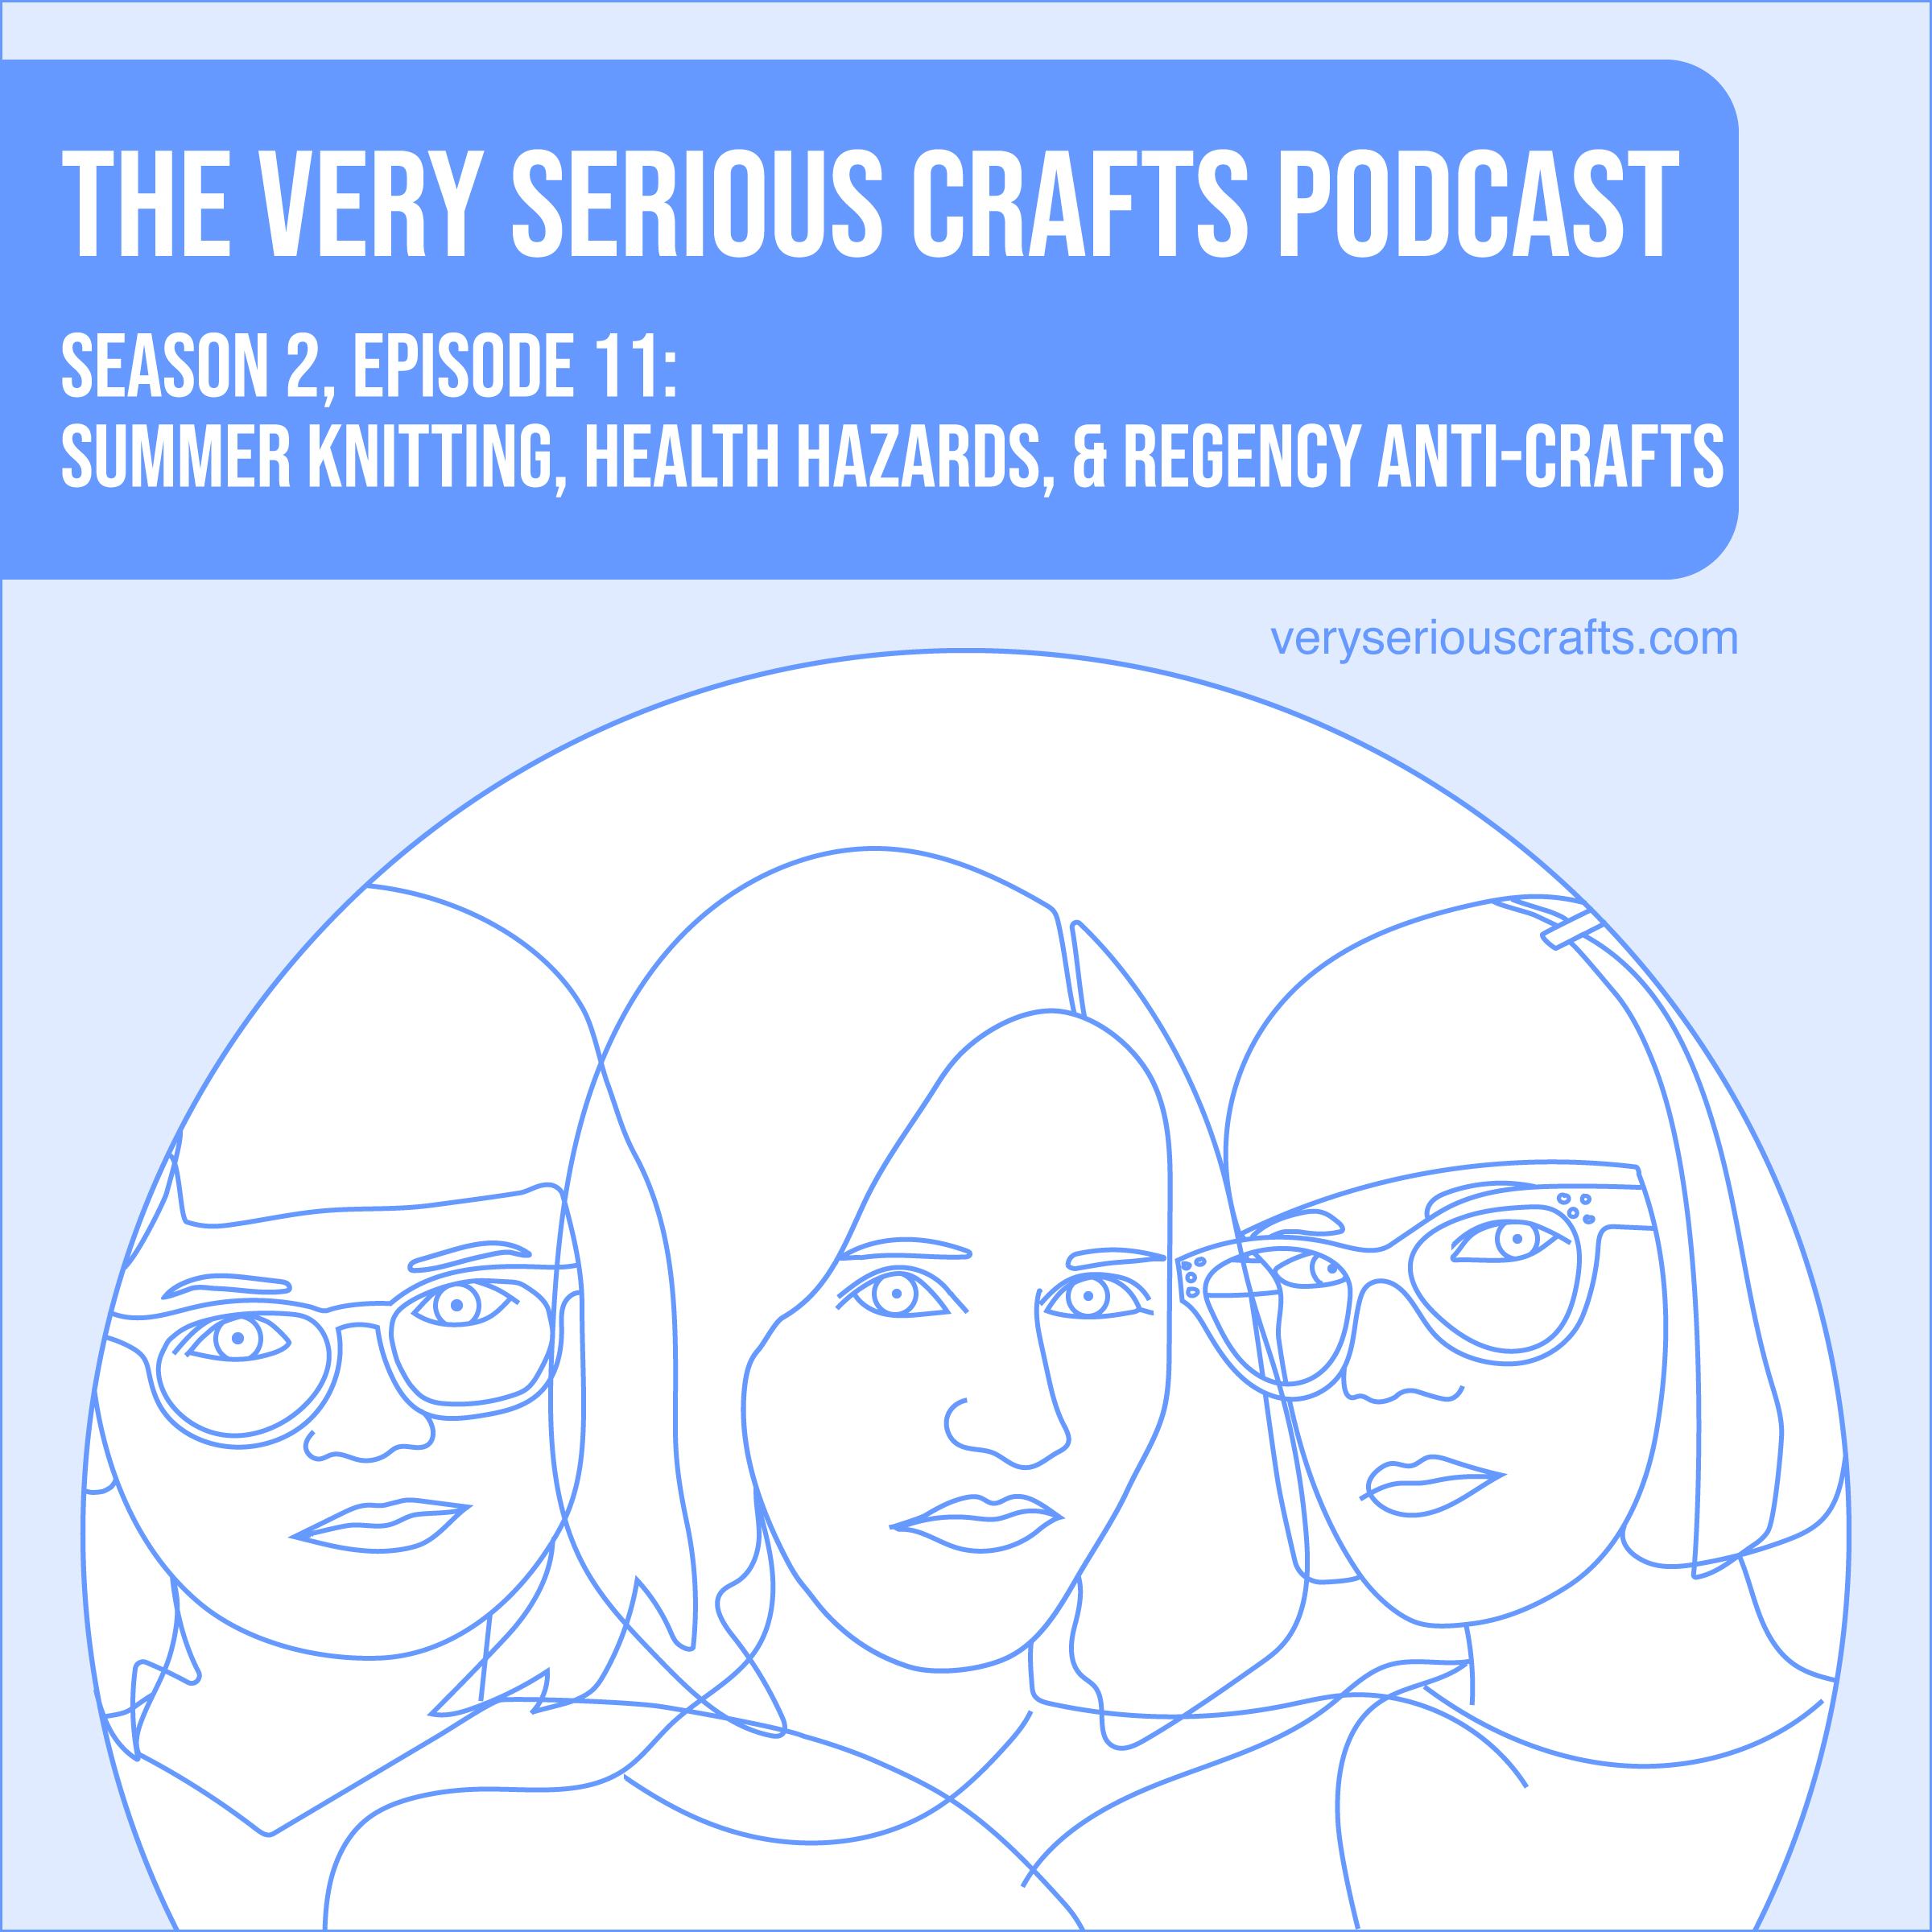 S2E11: Summer Knitting, Health Hazards, and Regency Anti-Crafts